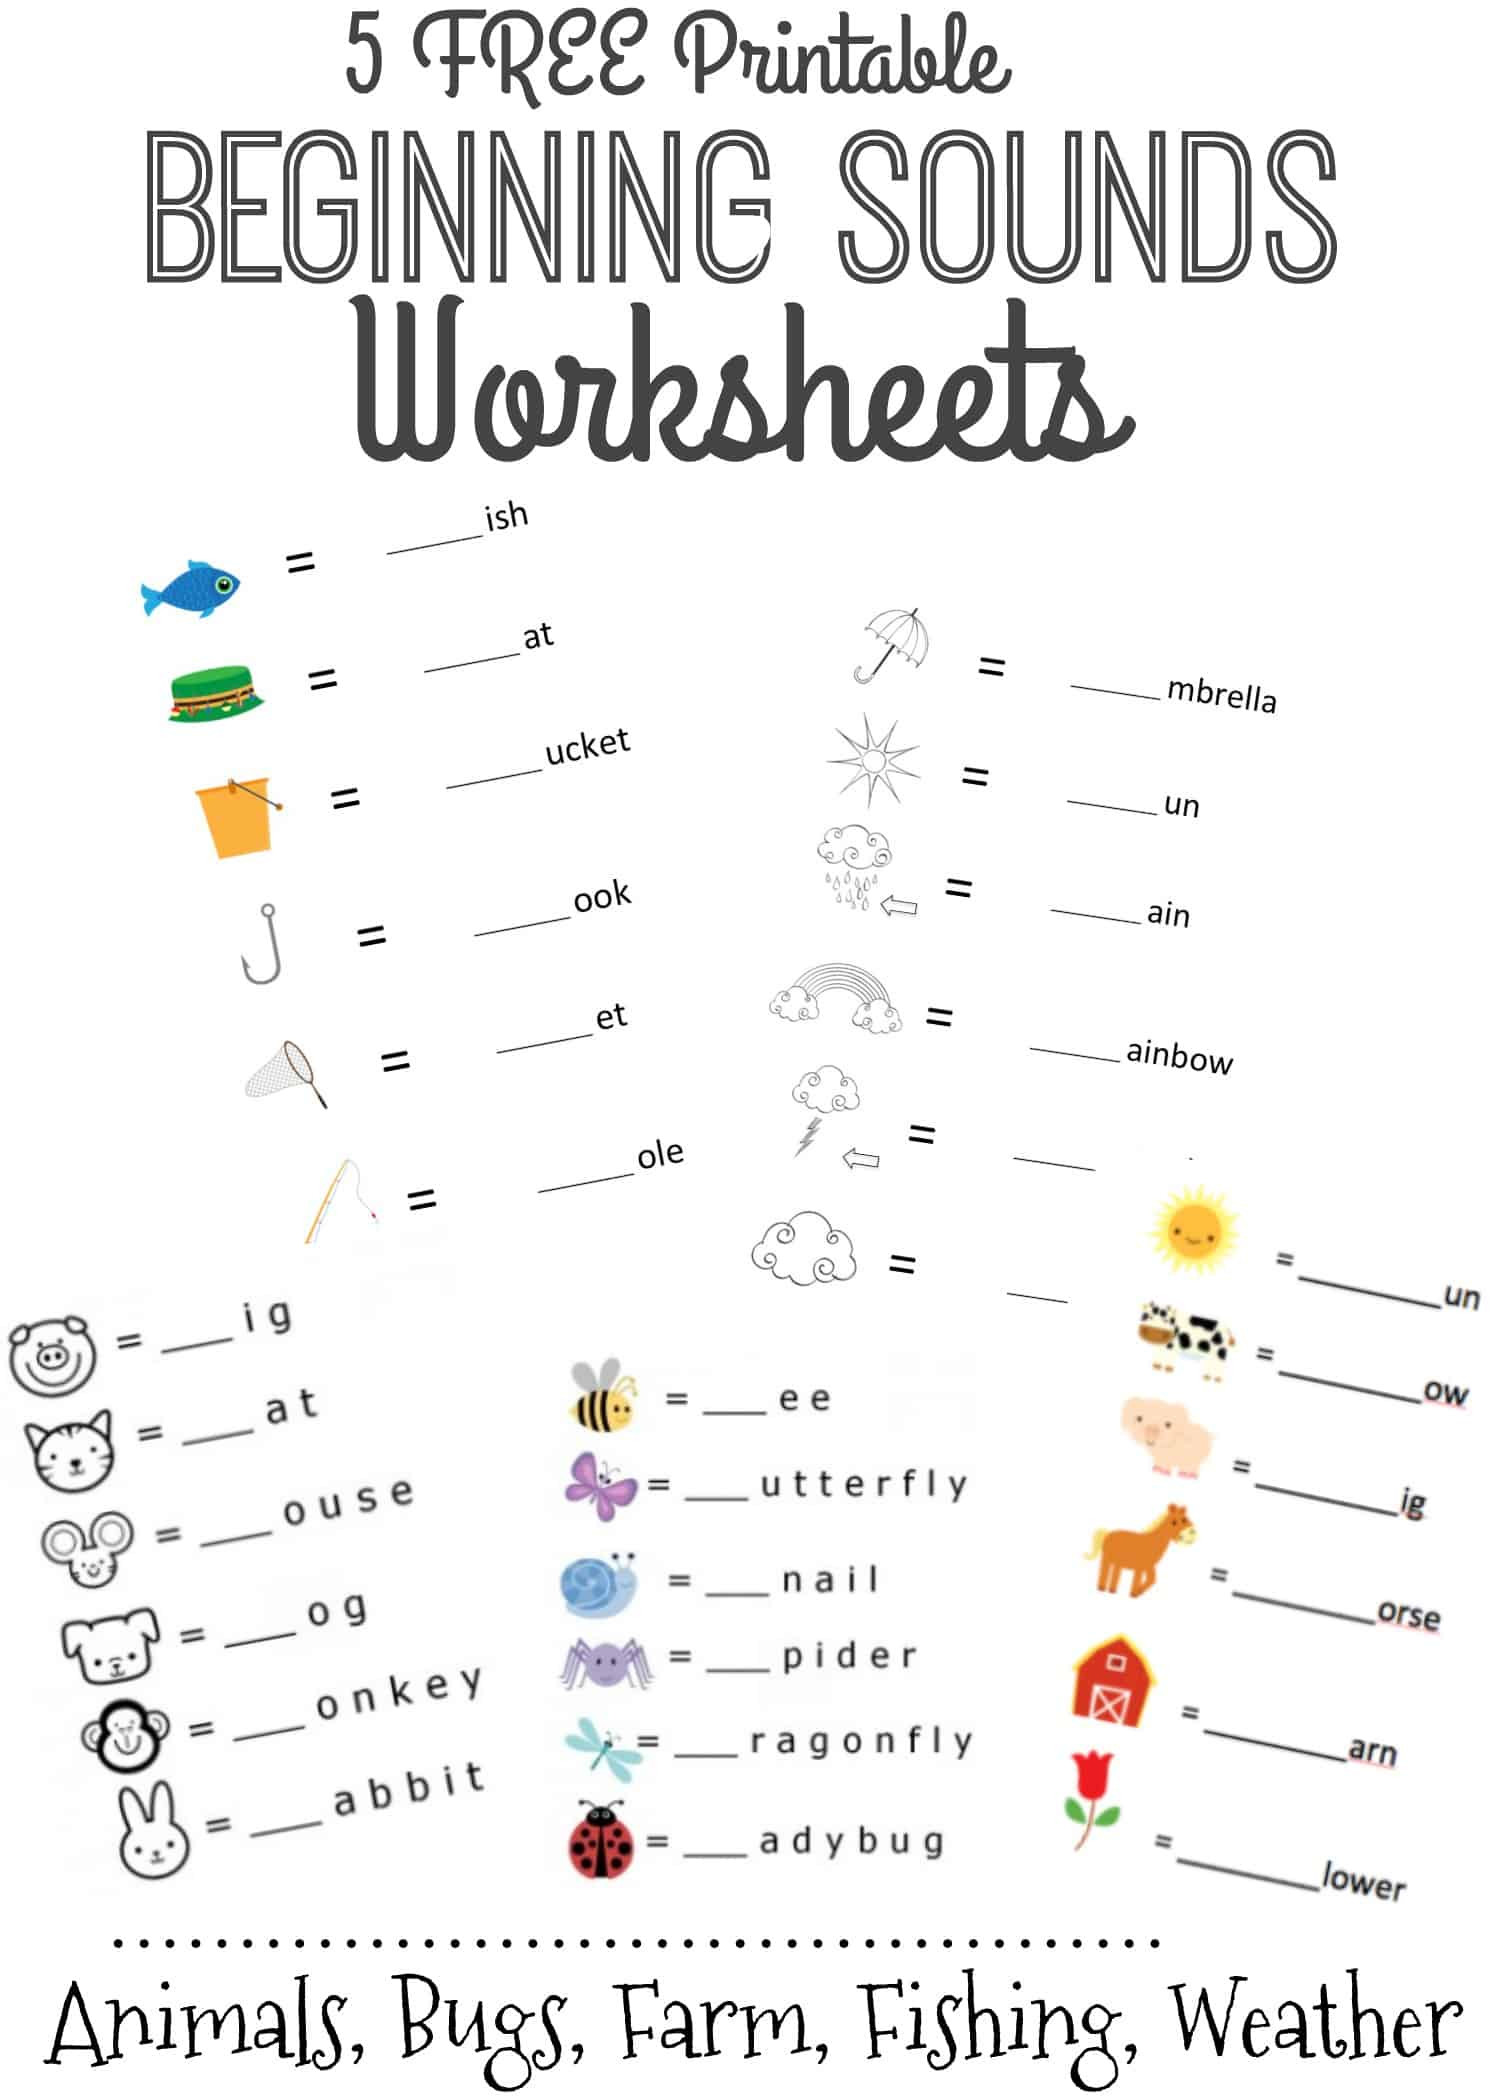 Preschool Bug Worksheets Beginning sounds Letter Worksheets for Early Learners